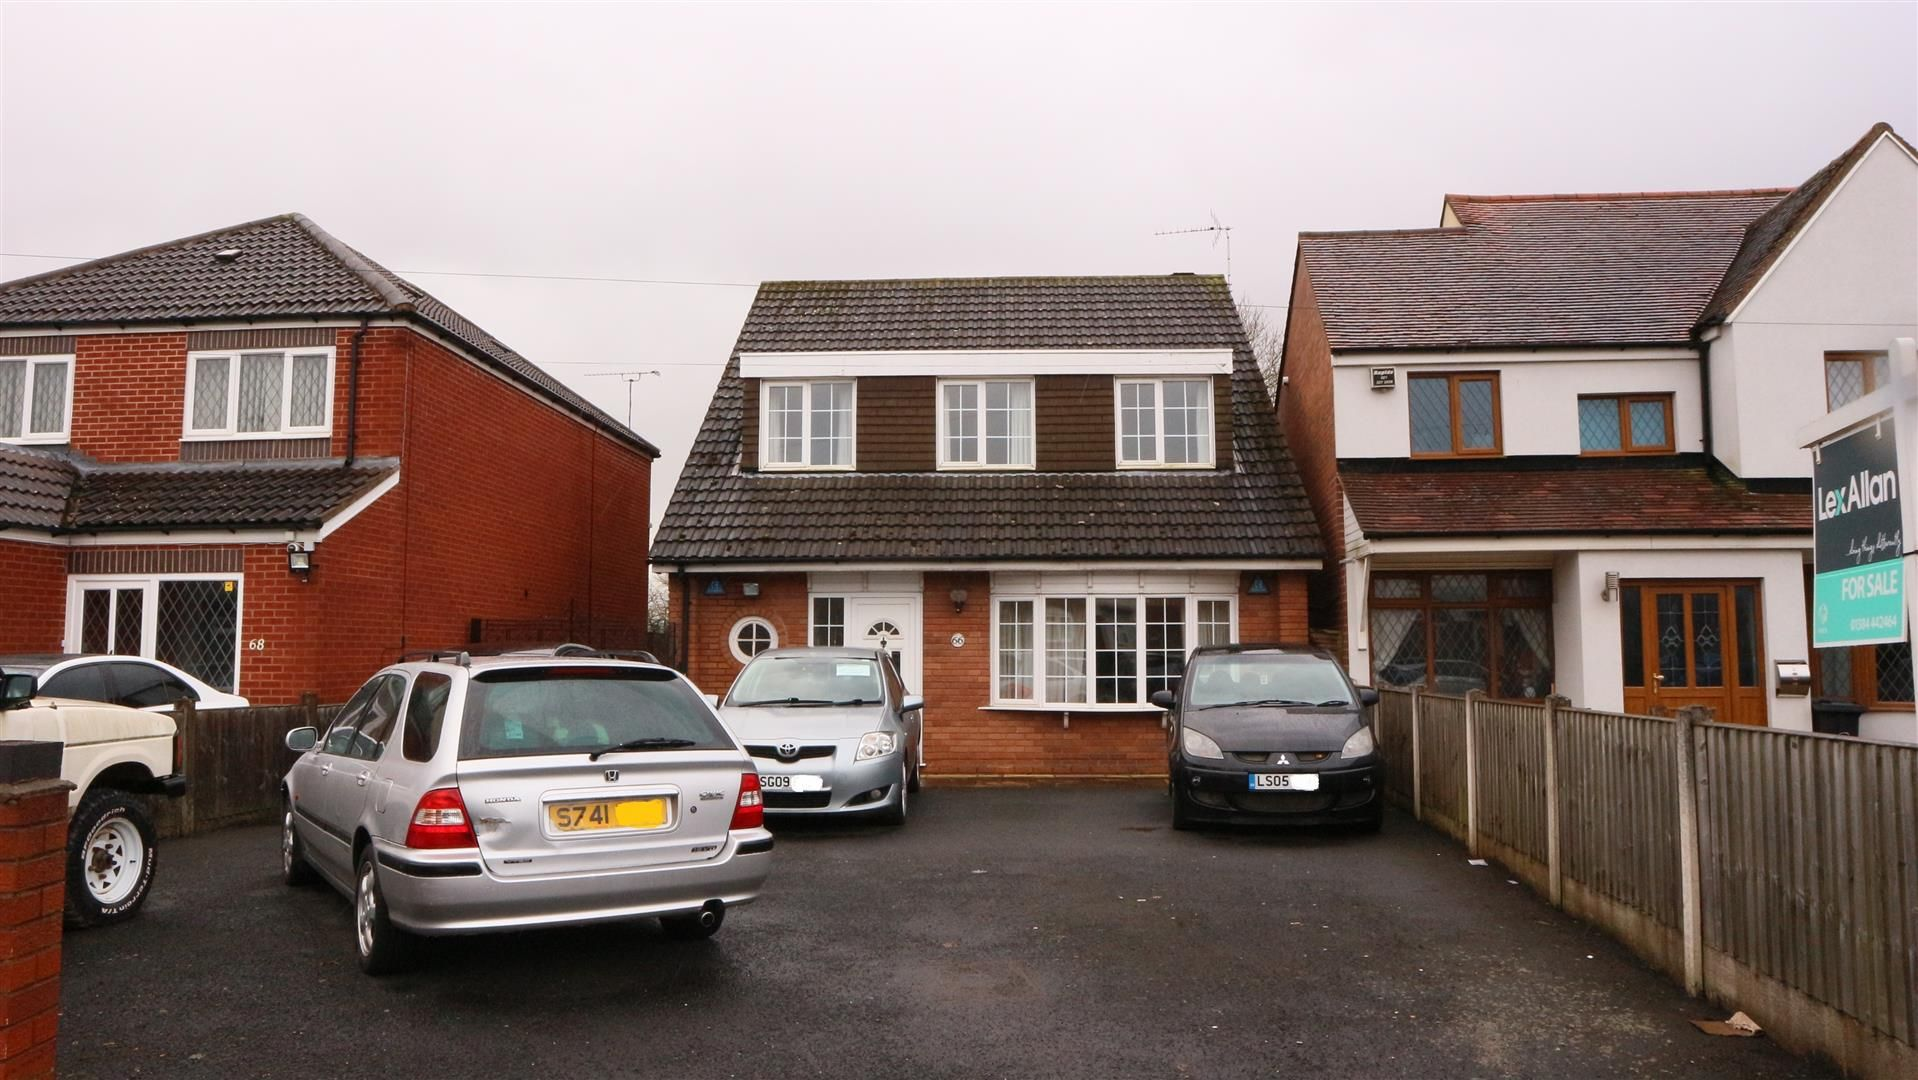 4 bed detached for sale in Wollaston, DY8